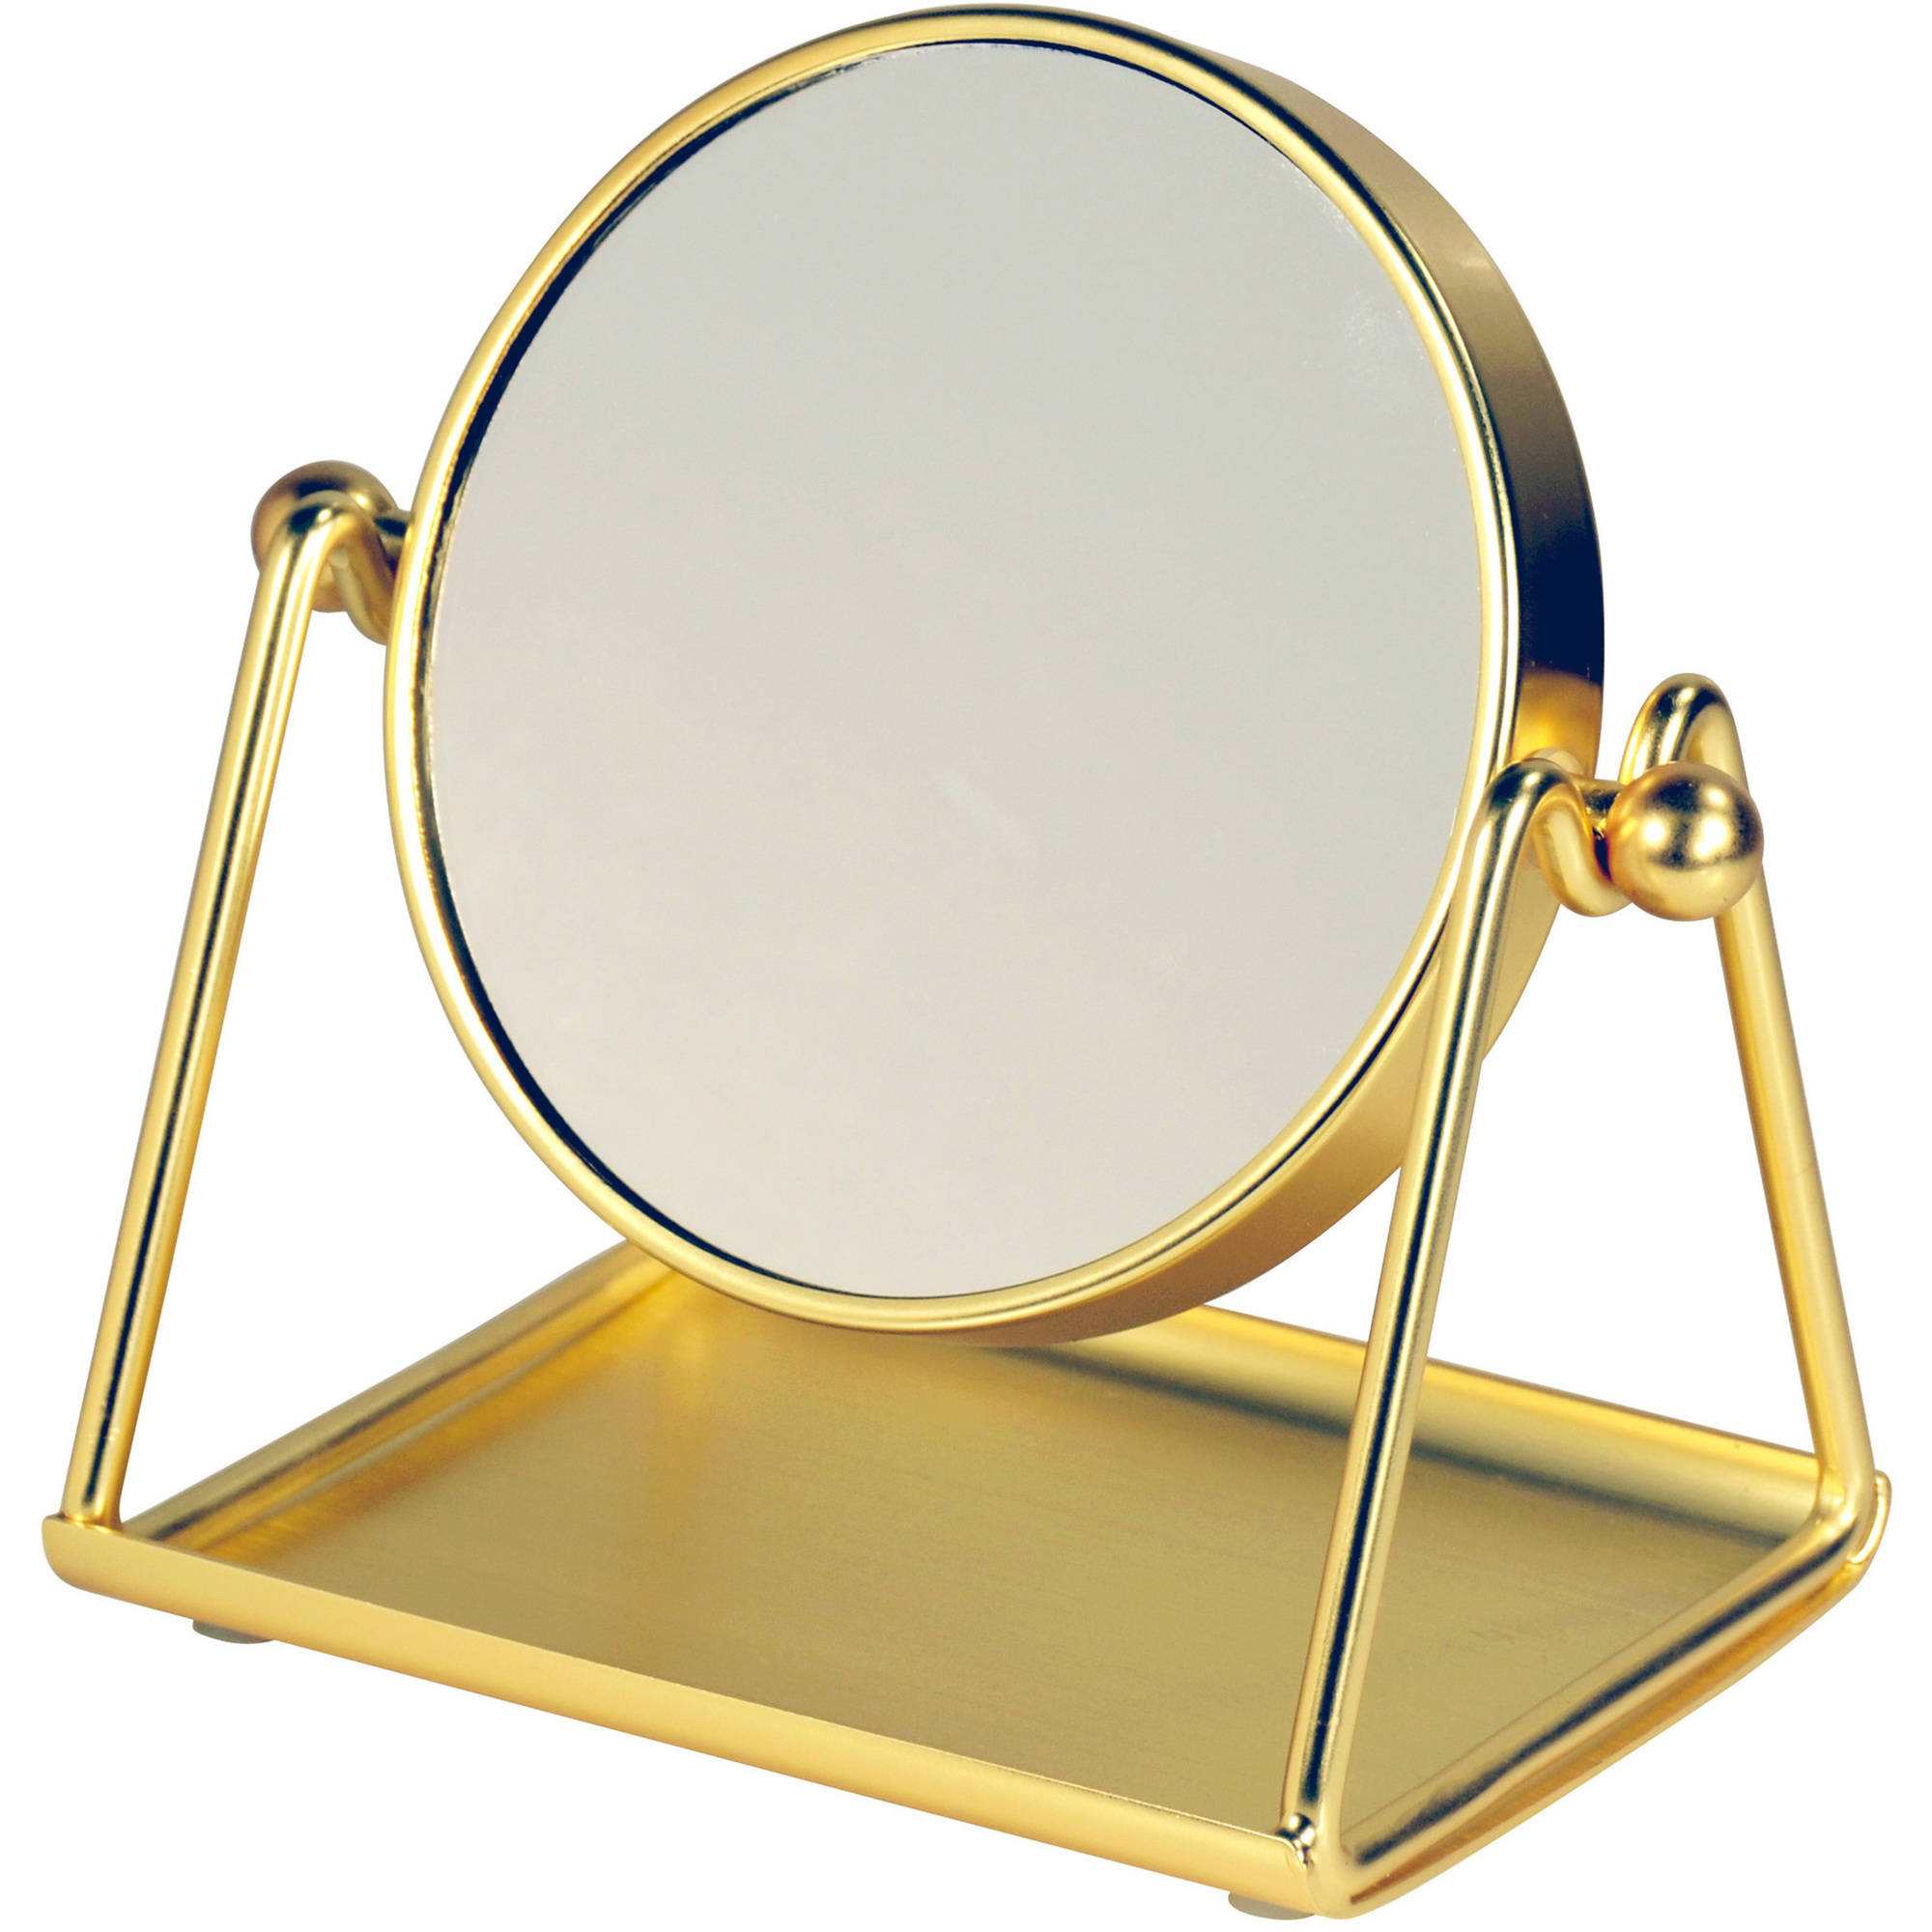 Better Homes and Gardens Personal Vanity Mirror in Gold by CHF Industries, Inc.